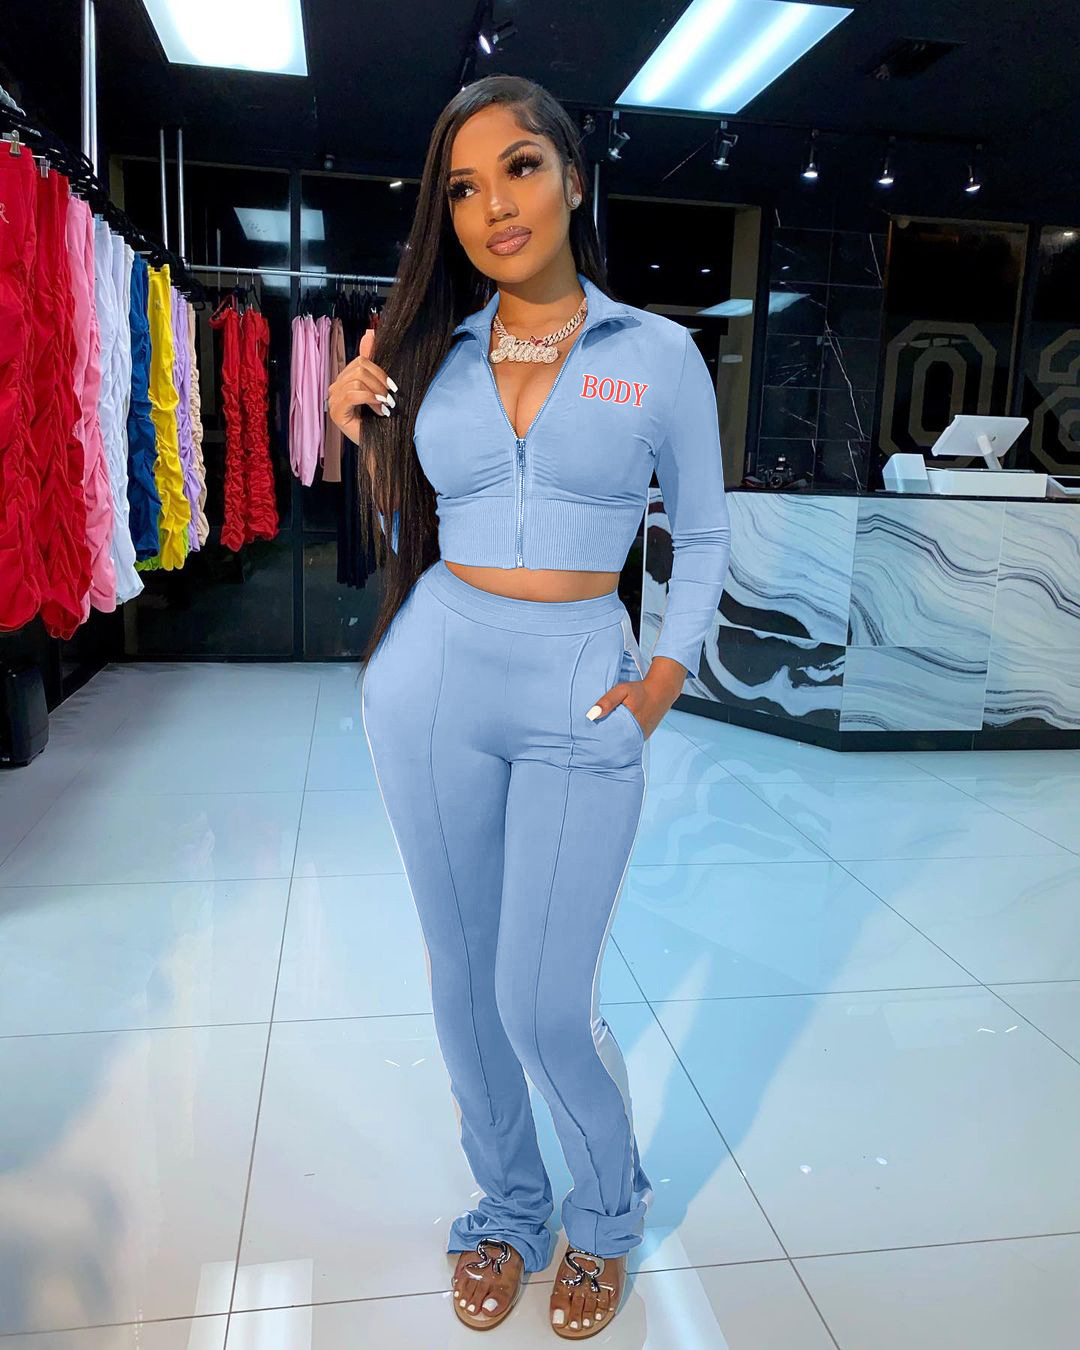 Echoine Body Letter Print Two Piece Set Woman Stand Neck Long Sleeve Crop Top And Pencil Pants Casual Workout Tracksuit